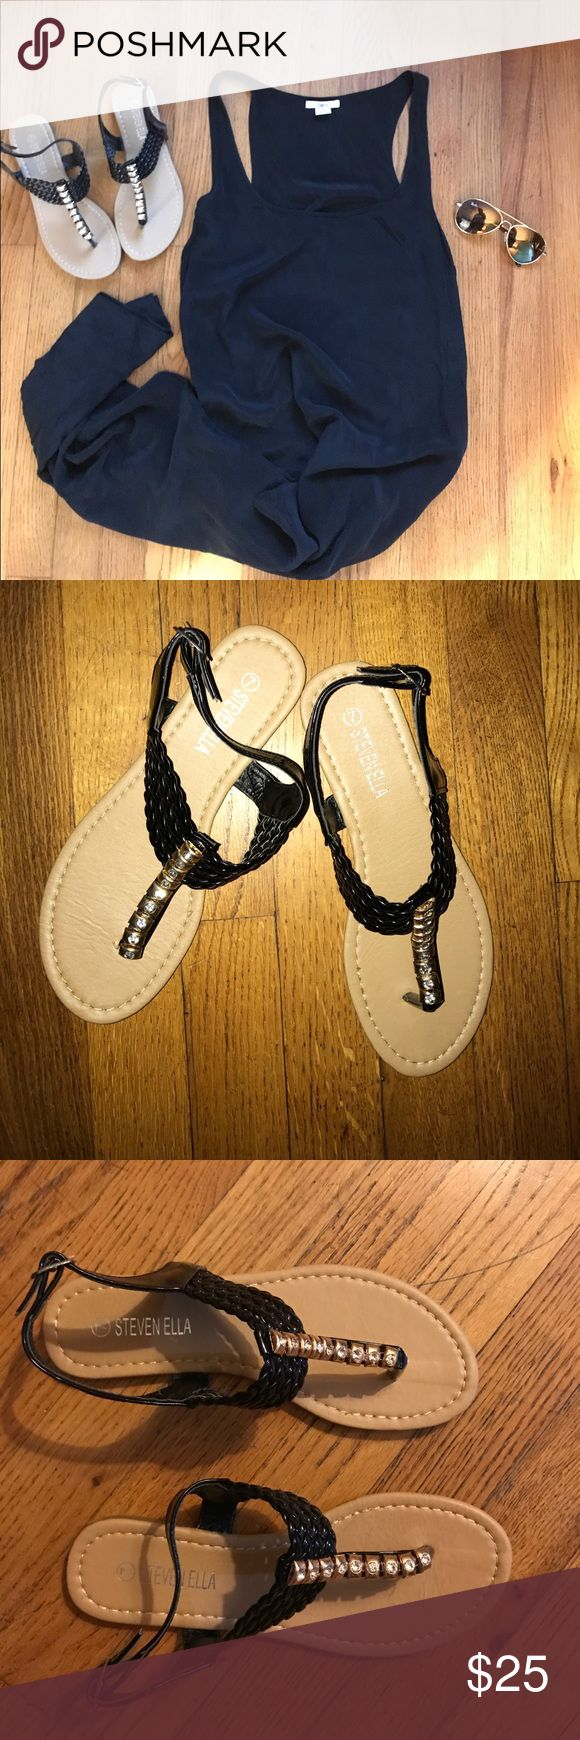 FREE {Steven Ella} Diamond Sandals [7] Diamond Studded Patent Leather Sandals. Size: 7. Brand New In Box. Super Cute! Great with shorts or a maxi! Free with any $75.00+ bundle ❤️❗️ Steven Ella Shoes Sandals